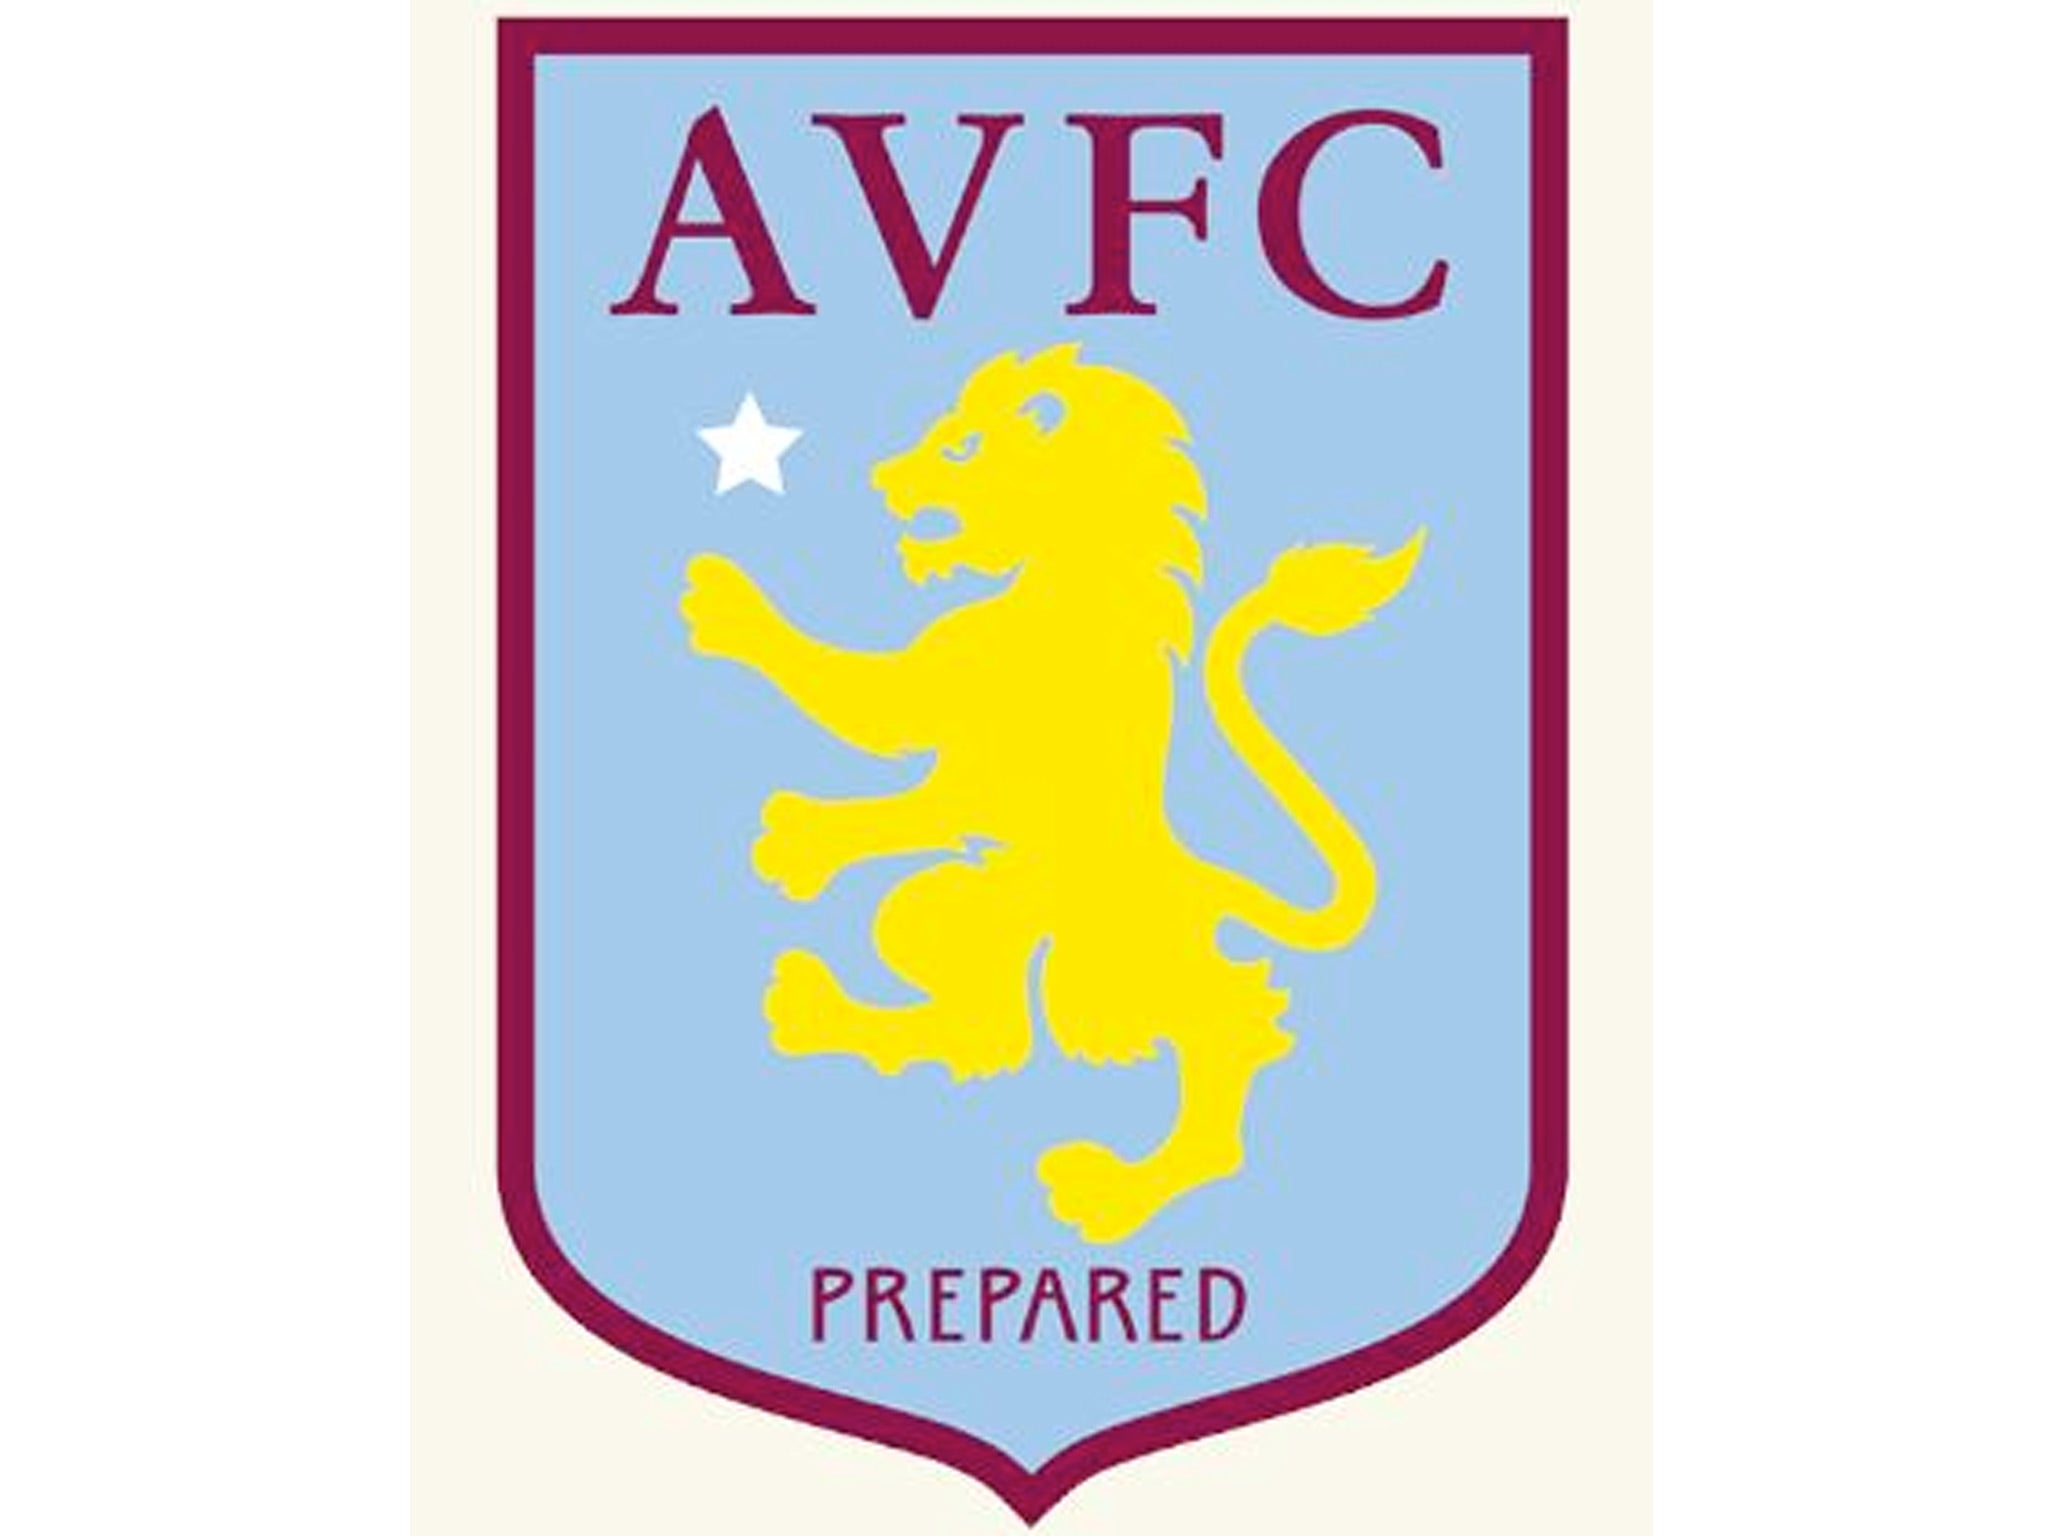 Aston Villa | All the action from the casino floor: news, views and more